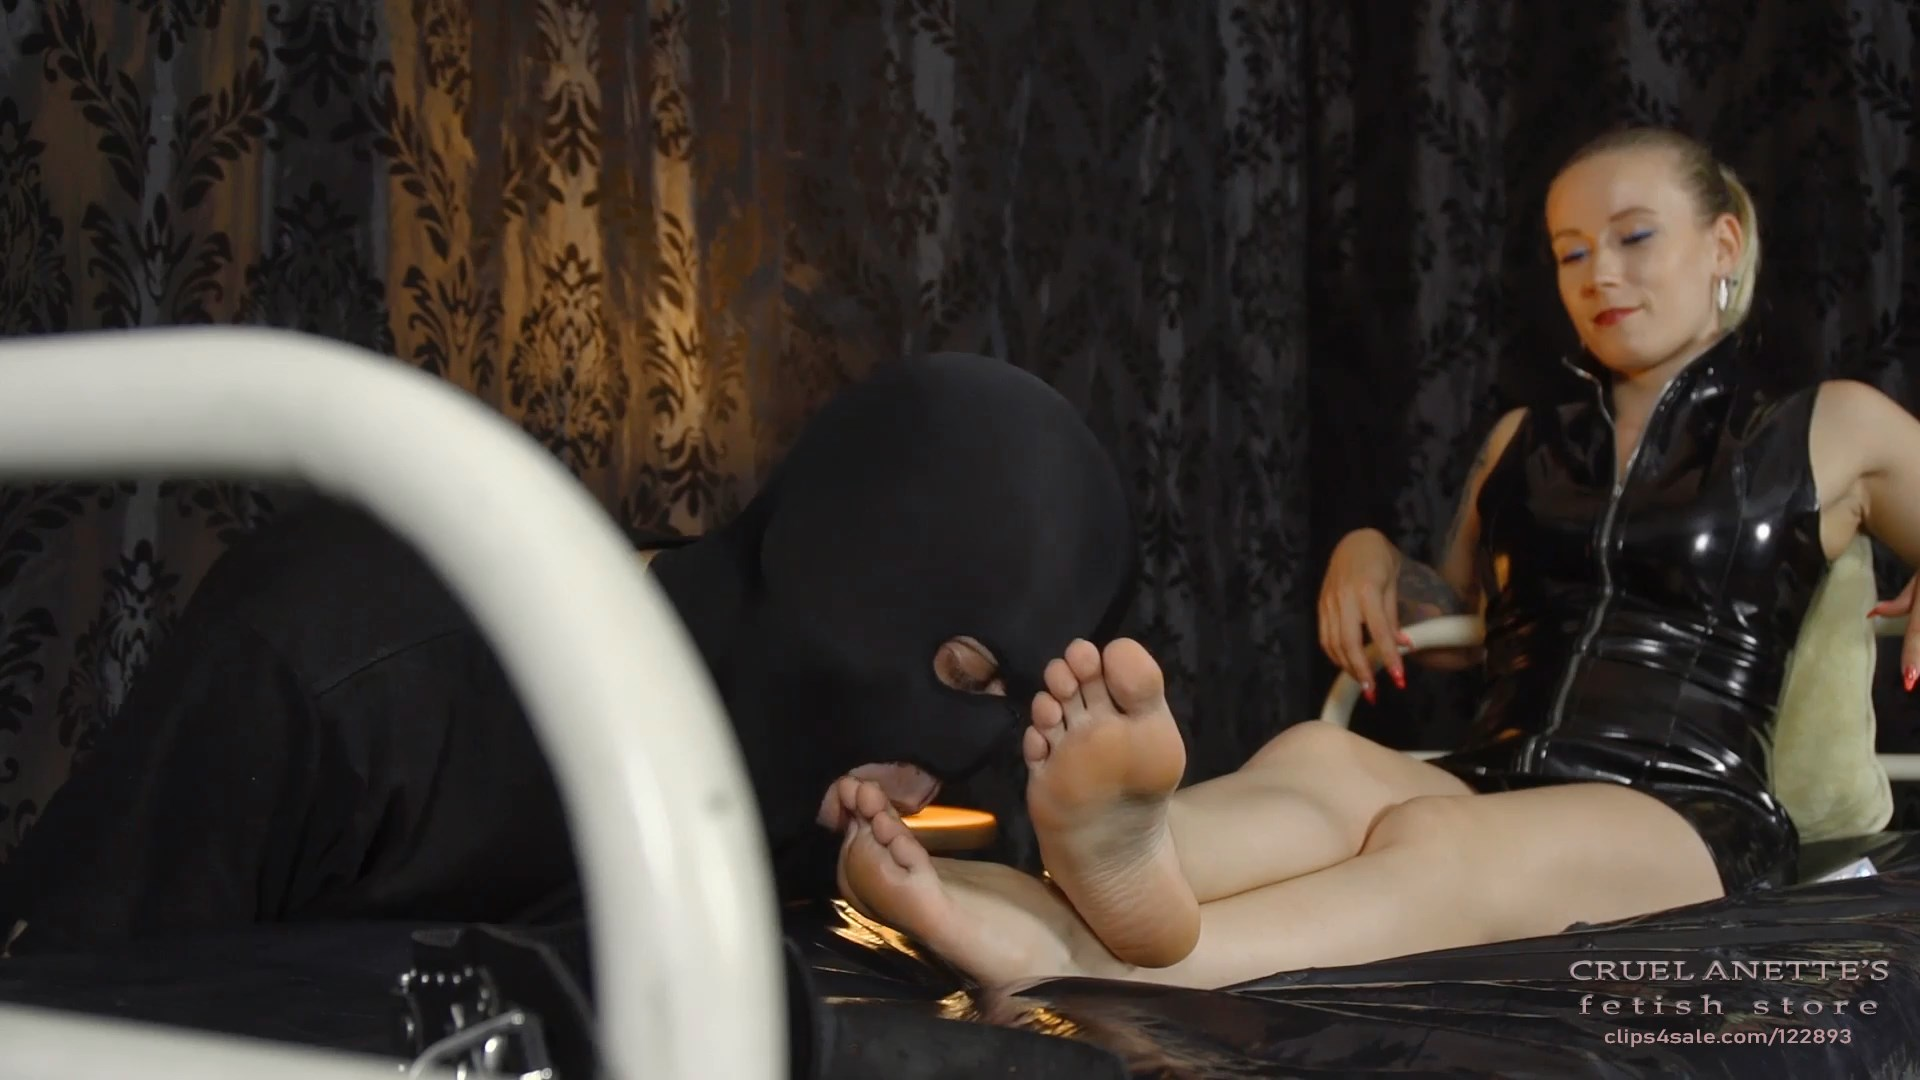 A chance to lick - CRUEL ANETTES FETISH STORE - FULL HD/1080p/MP4